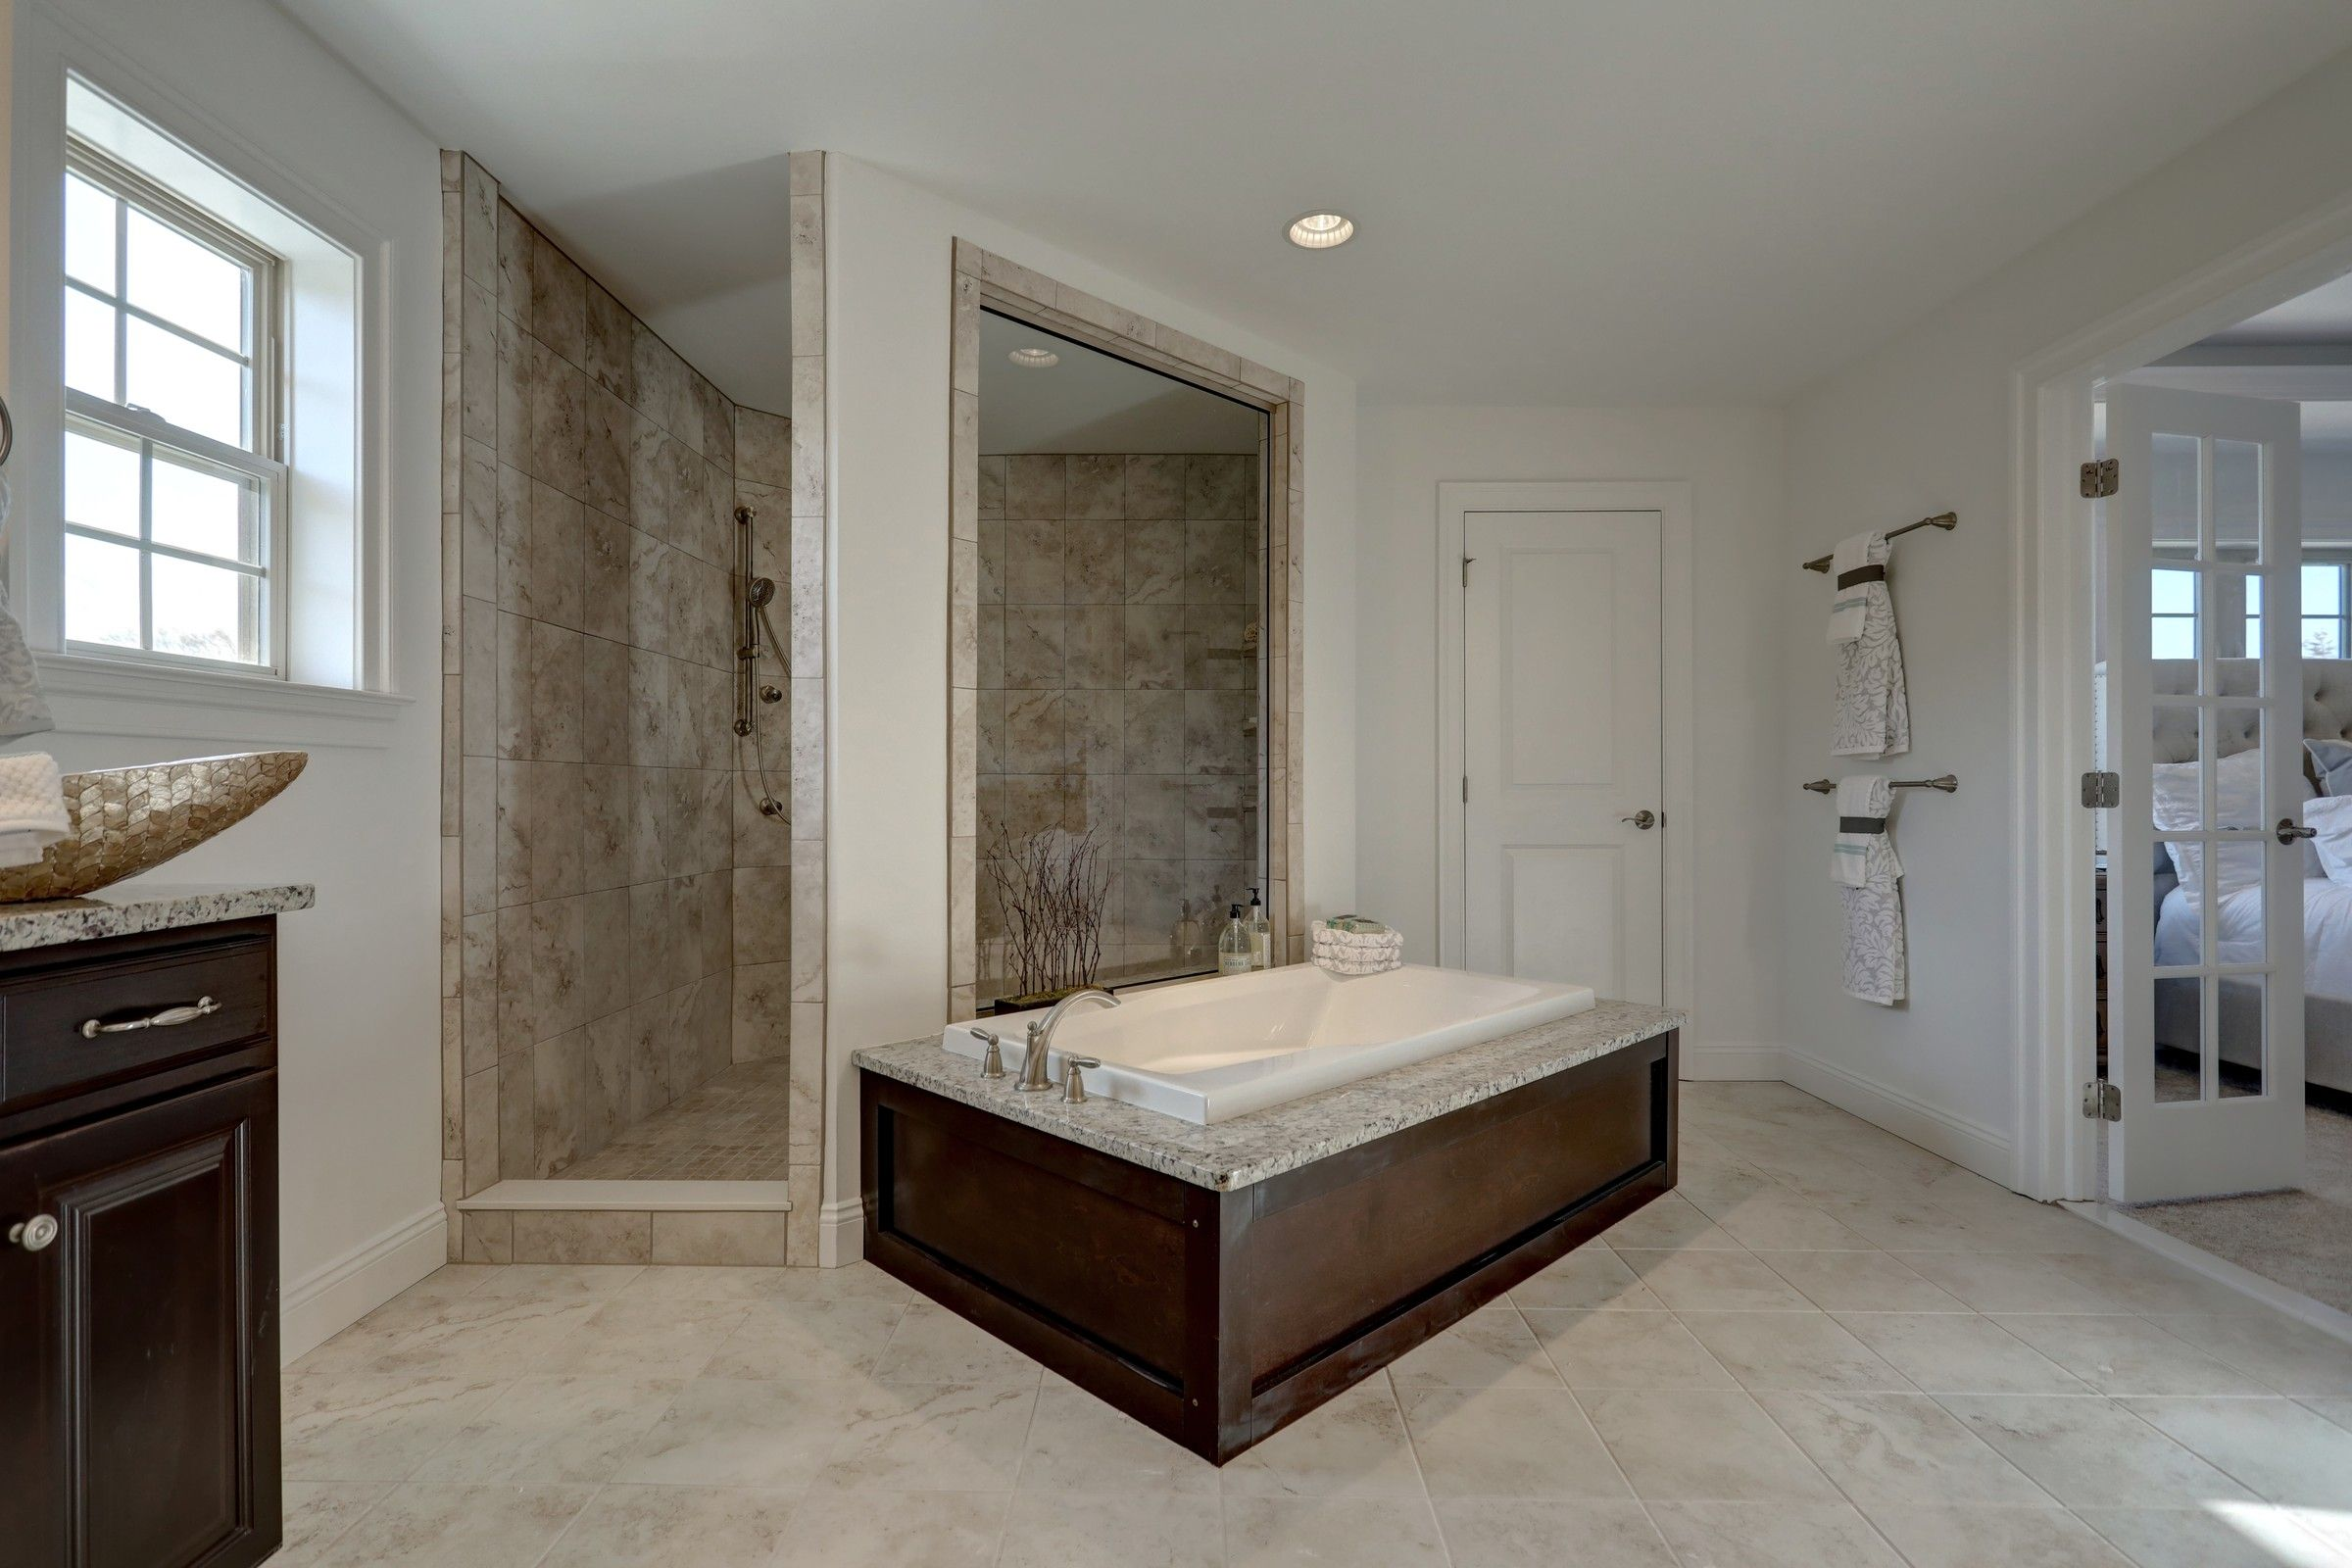 Bathroom featured in the Ethan Normandy By Keystone Custom Homes in York, PA